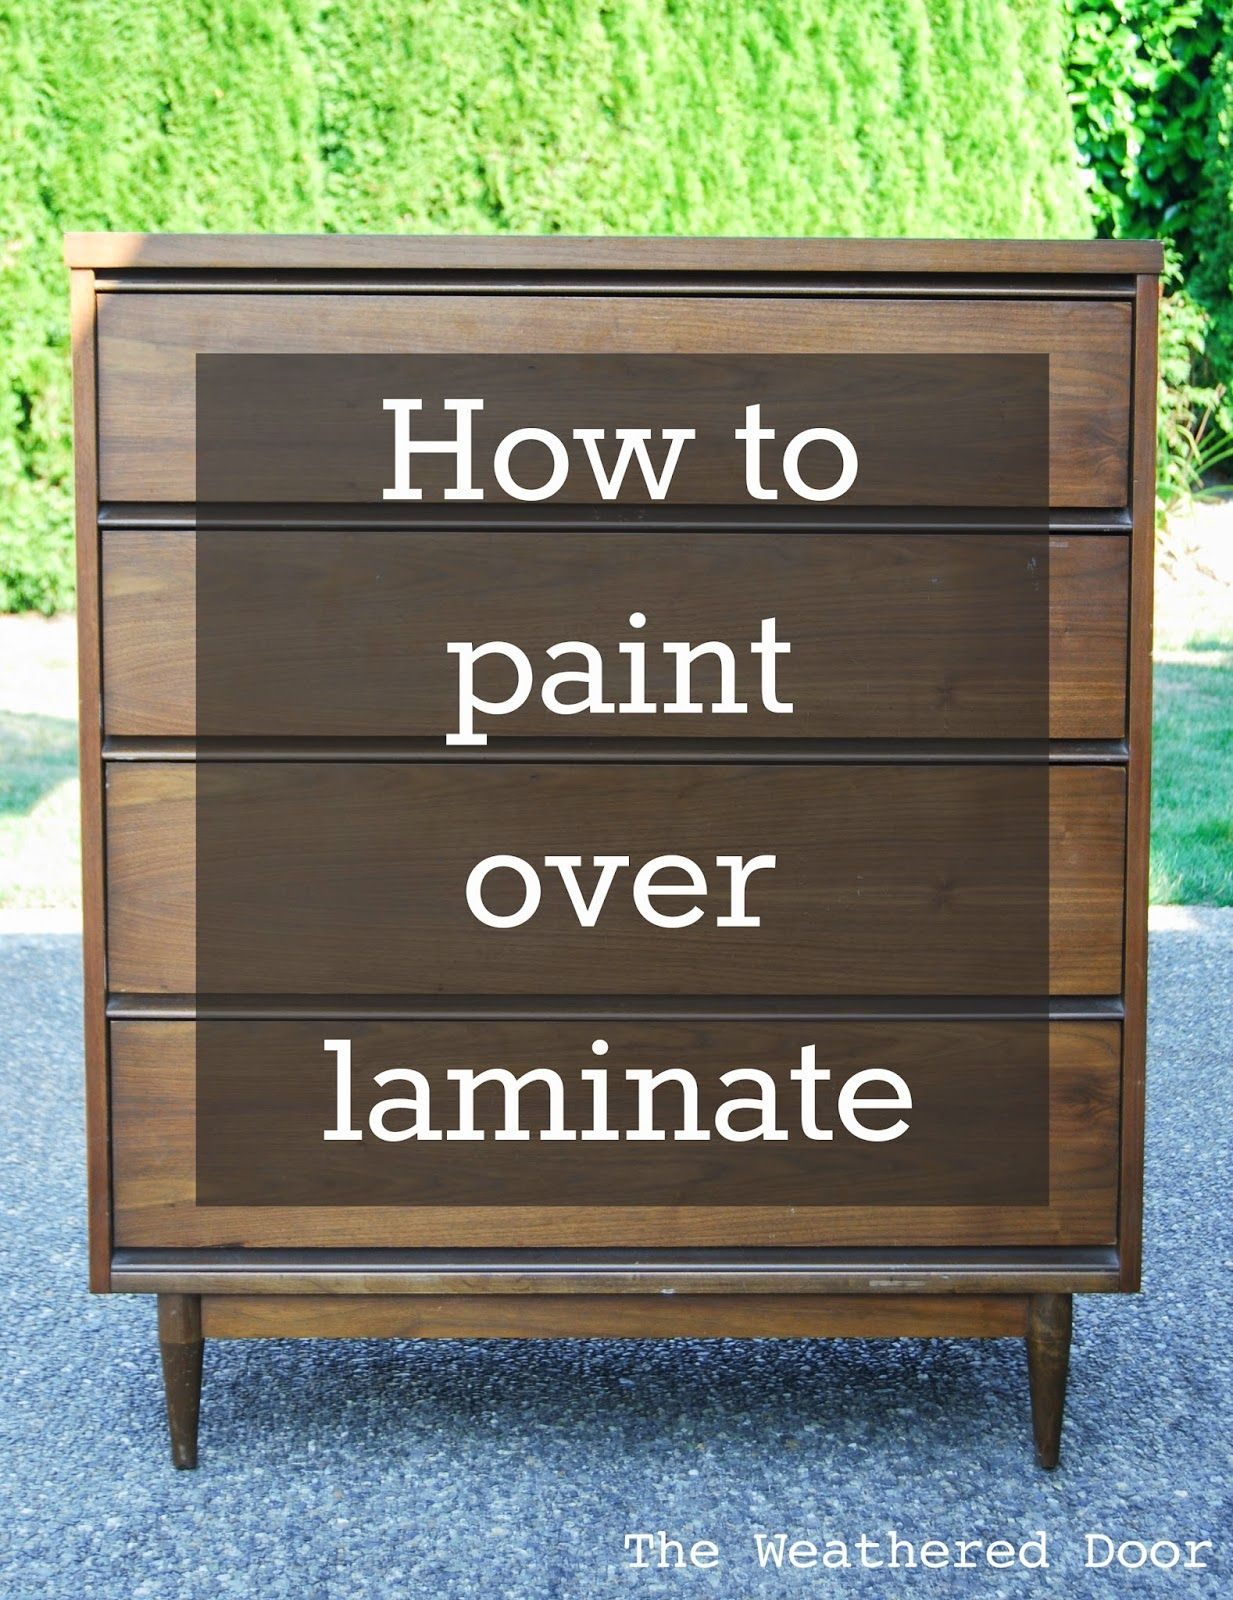 How to Paint over Laminate and why I love furniture with laminate tops (and why you should too!)  The Weathered Door is part of Laminate furniture - Painting over laminate can be an easy process with great results  Learn how to paint over laminate and end up with a durable finish